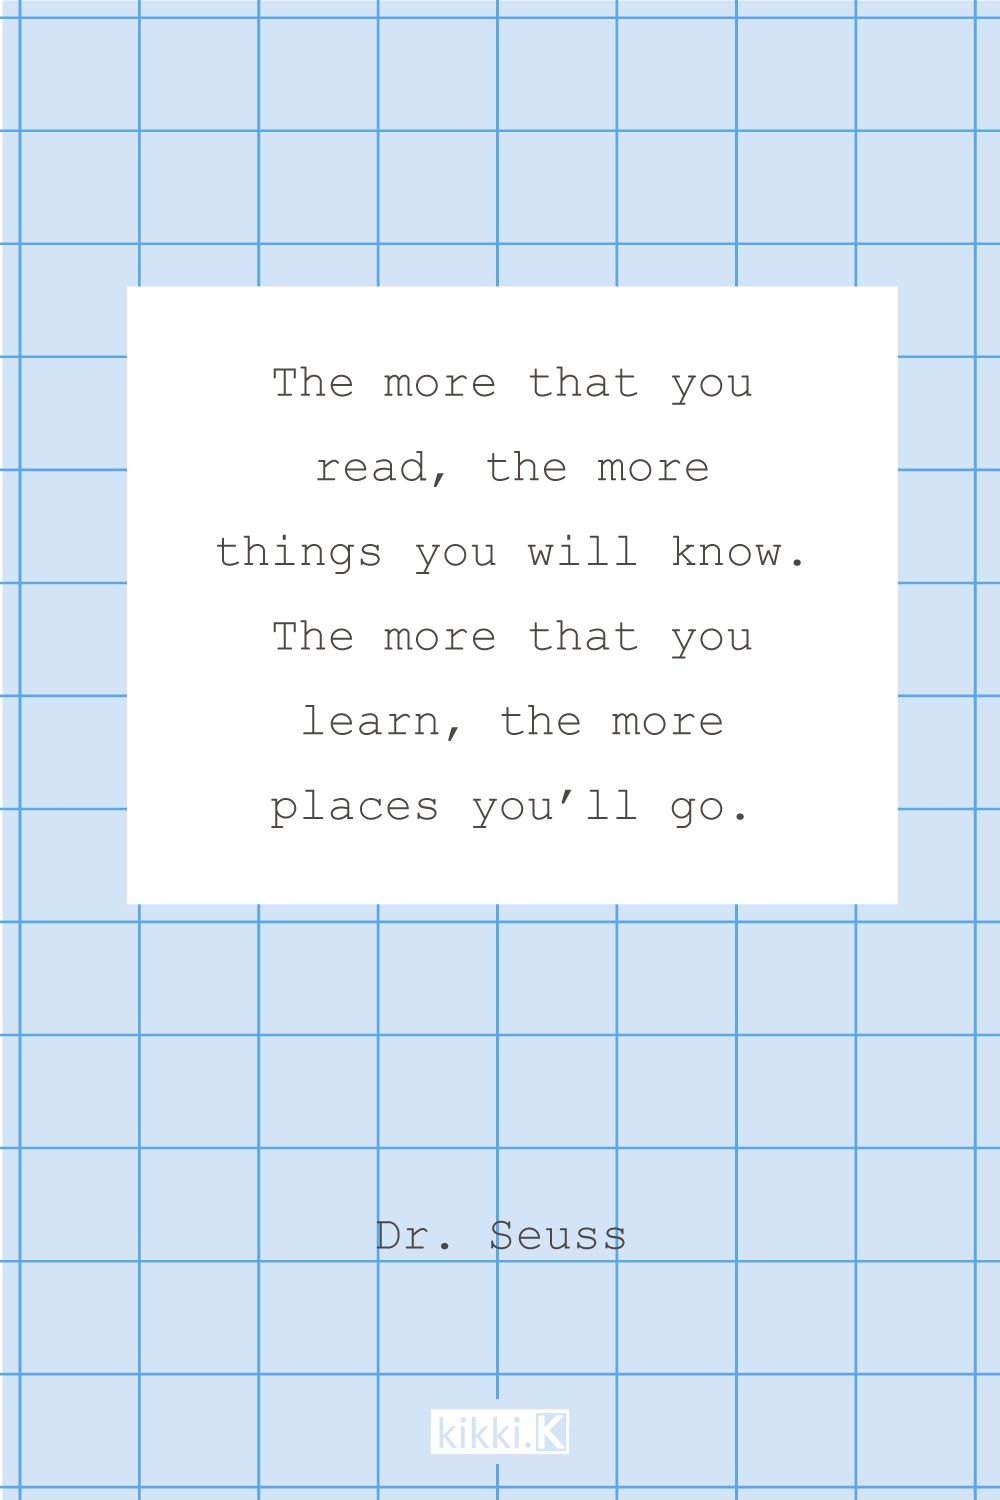 We Love This Inspiring Dr. Seuss Quote   The More You Read, The More